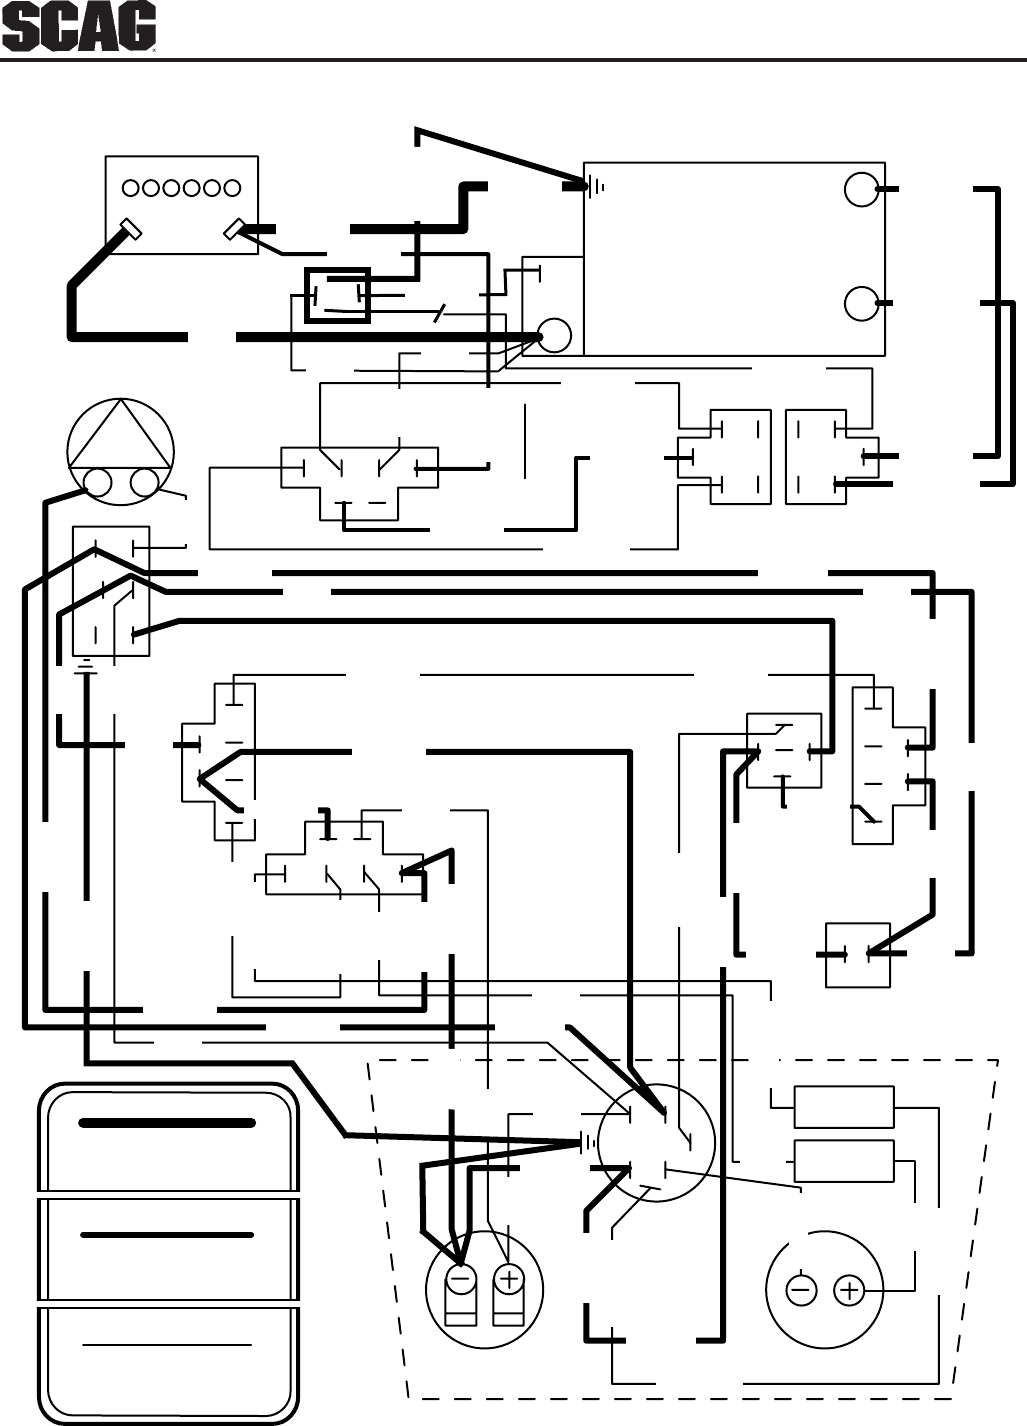 b9ce615b 020e 4d78 97db 0a4906c05276 bg22 scag wiring diagram on scag images free download wiring diagrams  at fashall.co